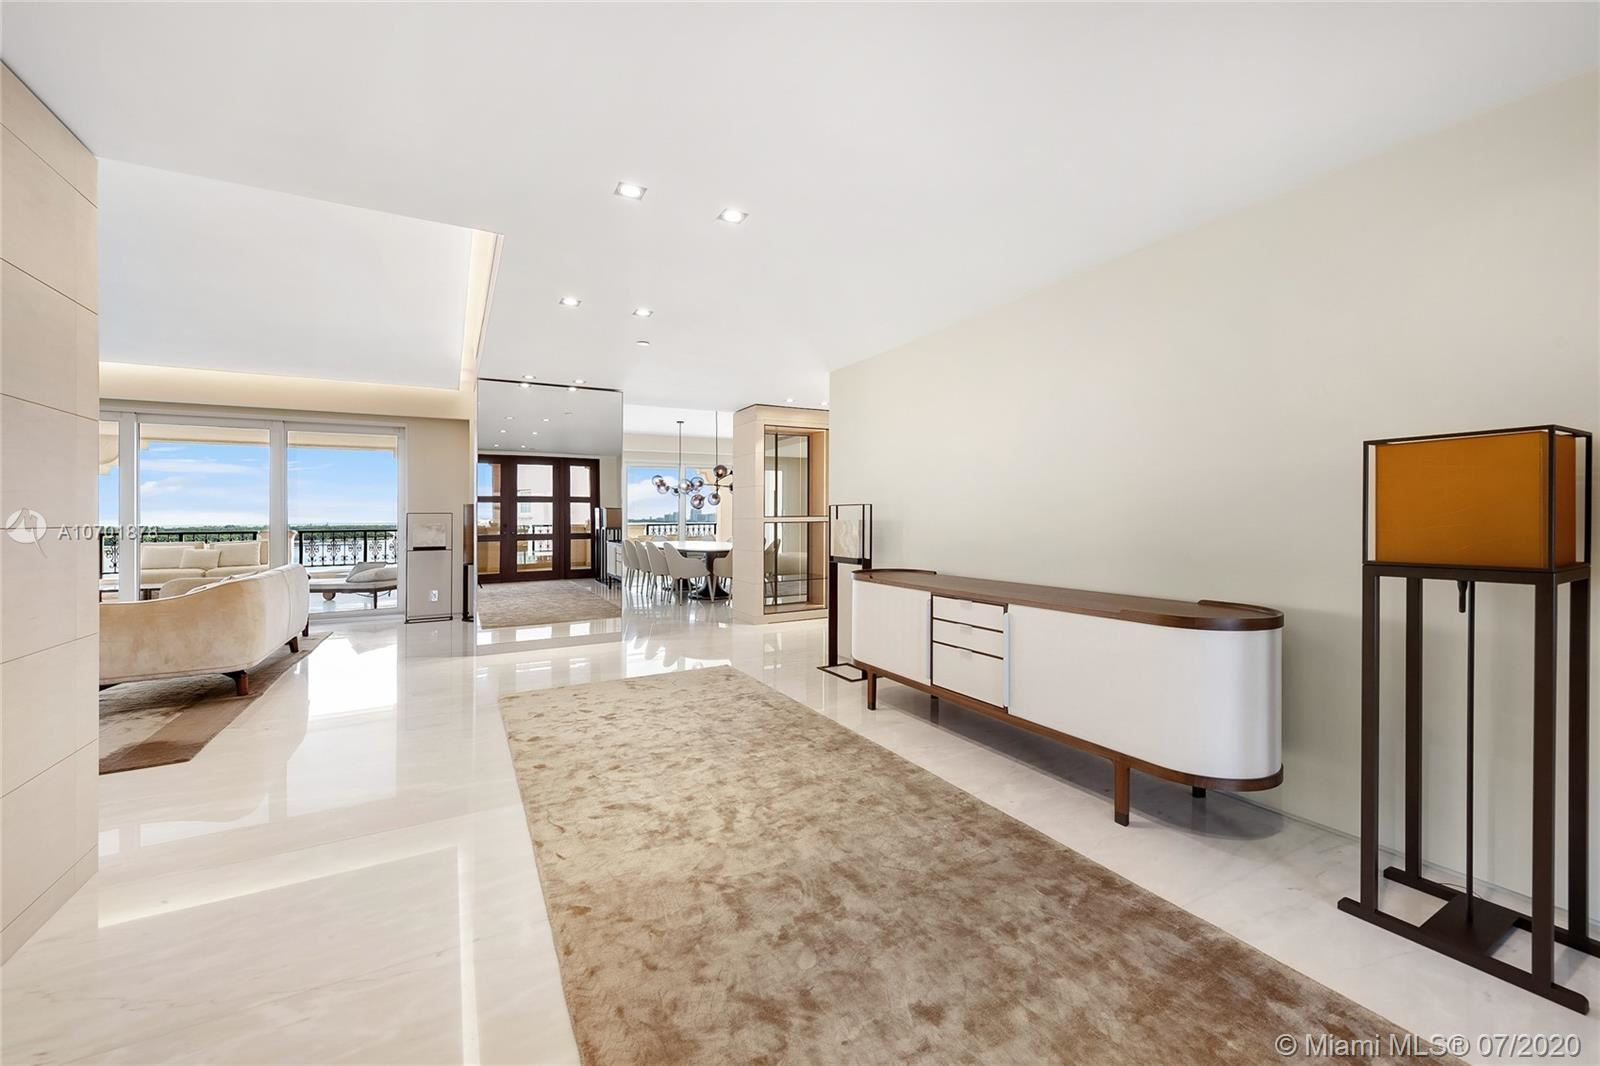 Photo 15 of Listing MLS a10701878 in 5292 Fisher Island Dr #5292 Miami FL 33109